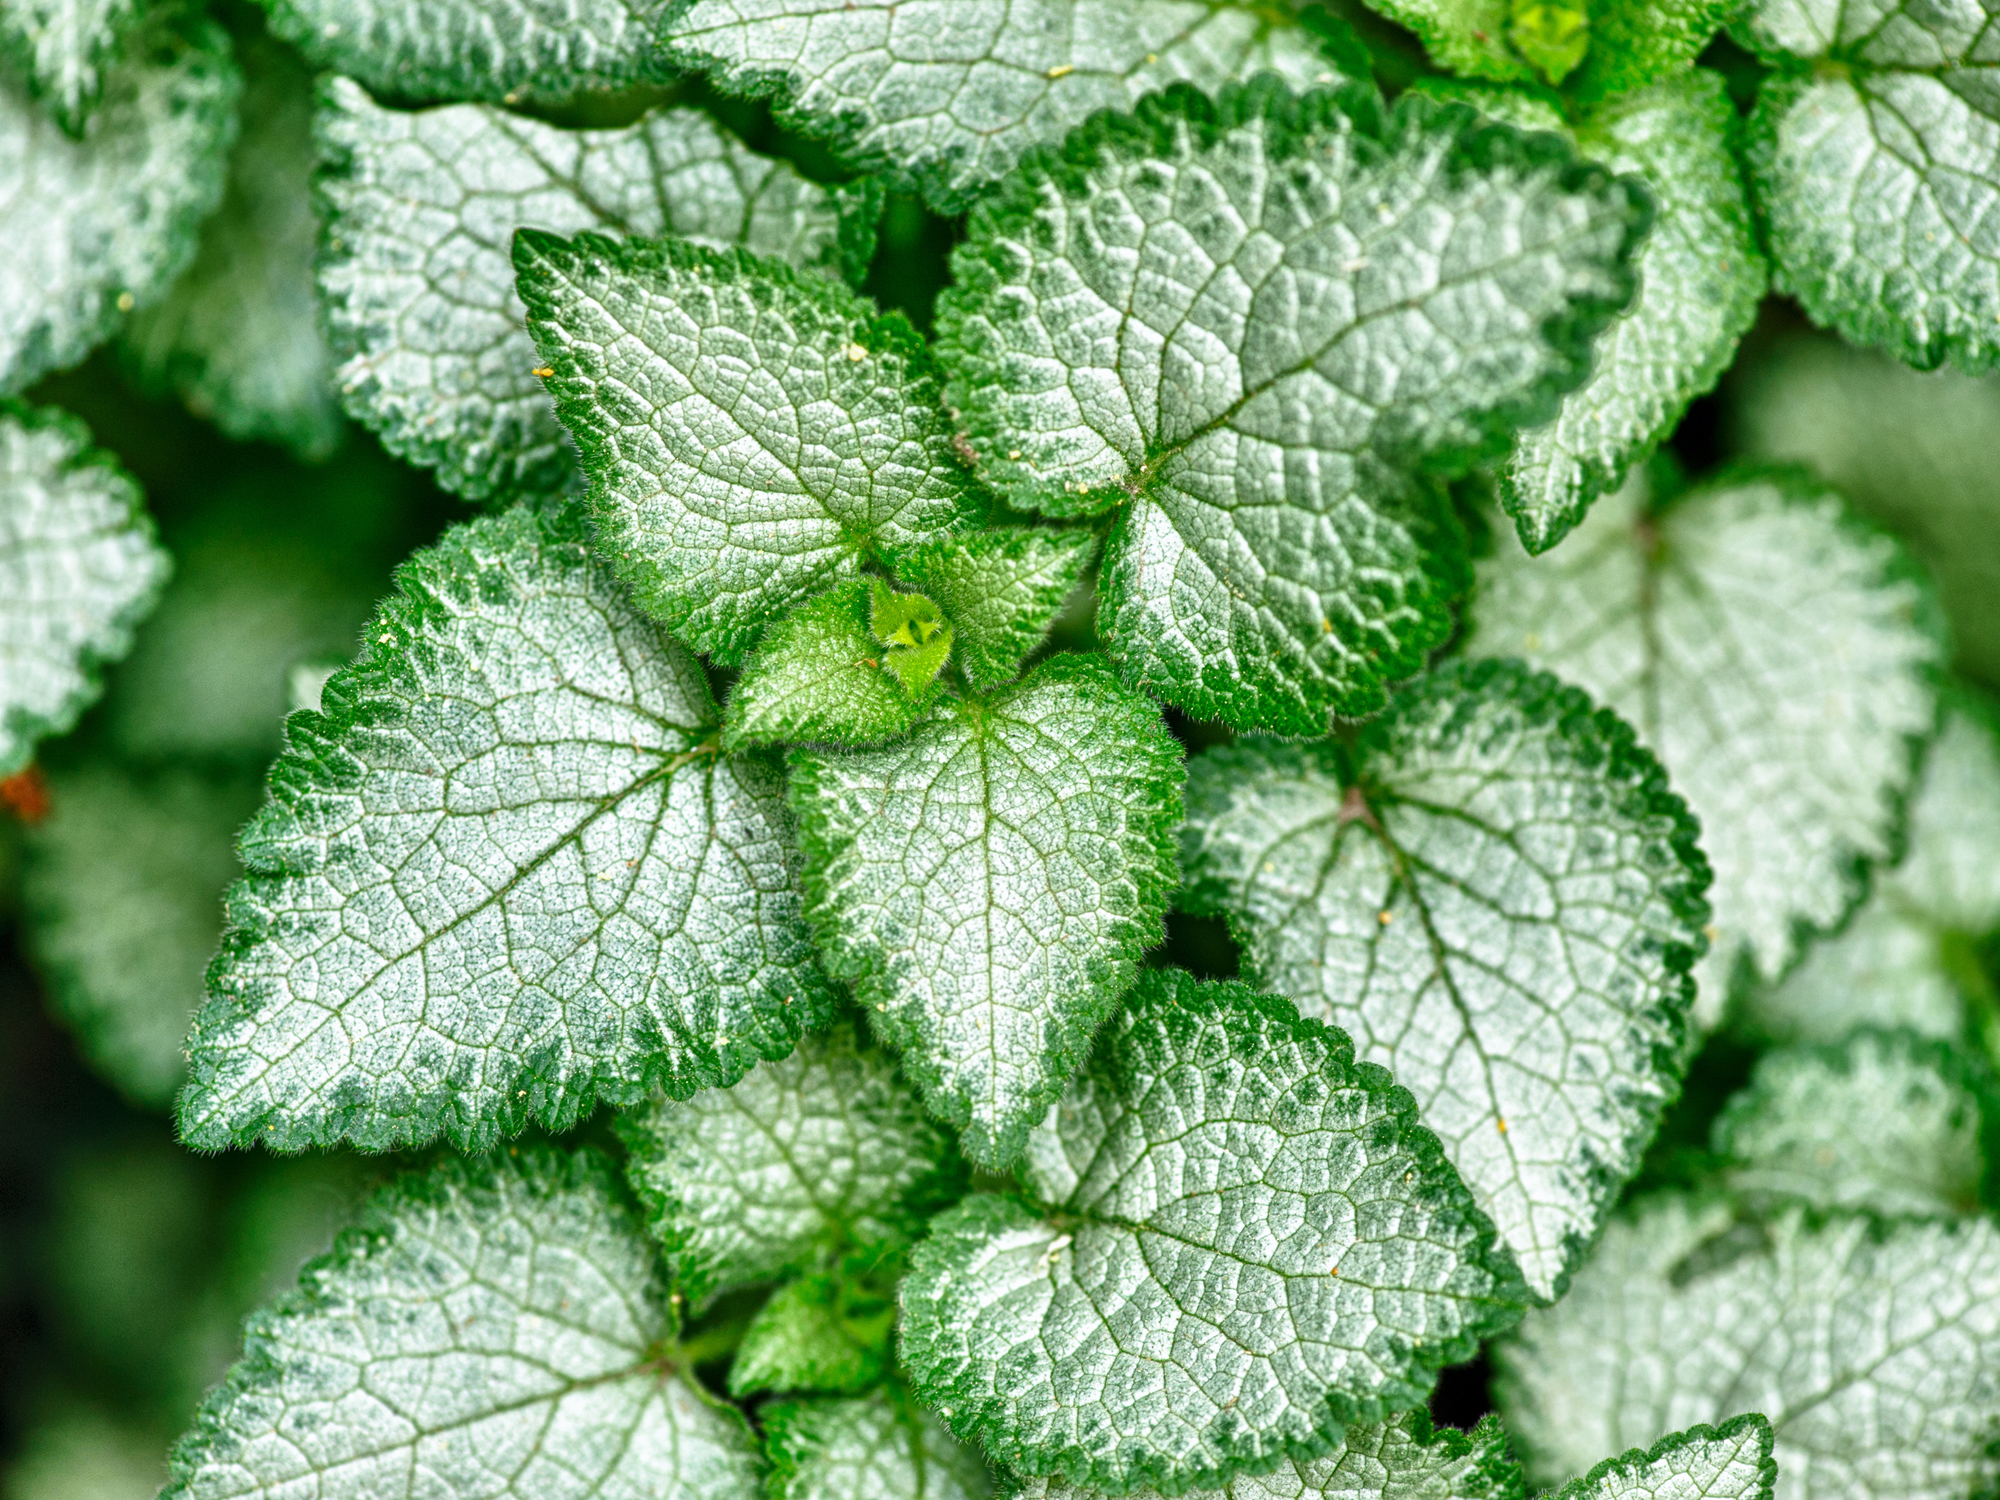 Forskolin, probably the most important natural lipolytic active known today